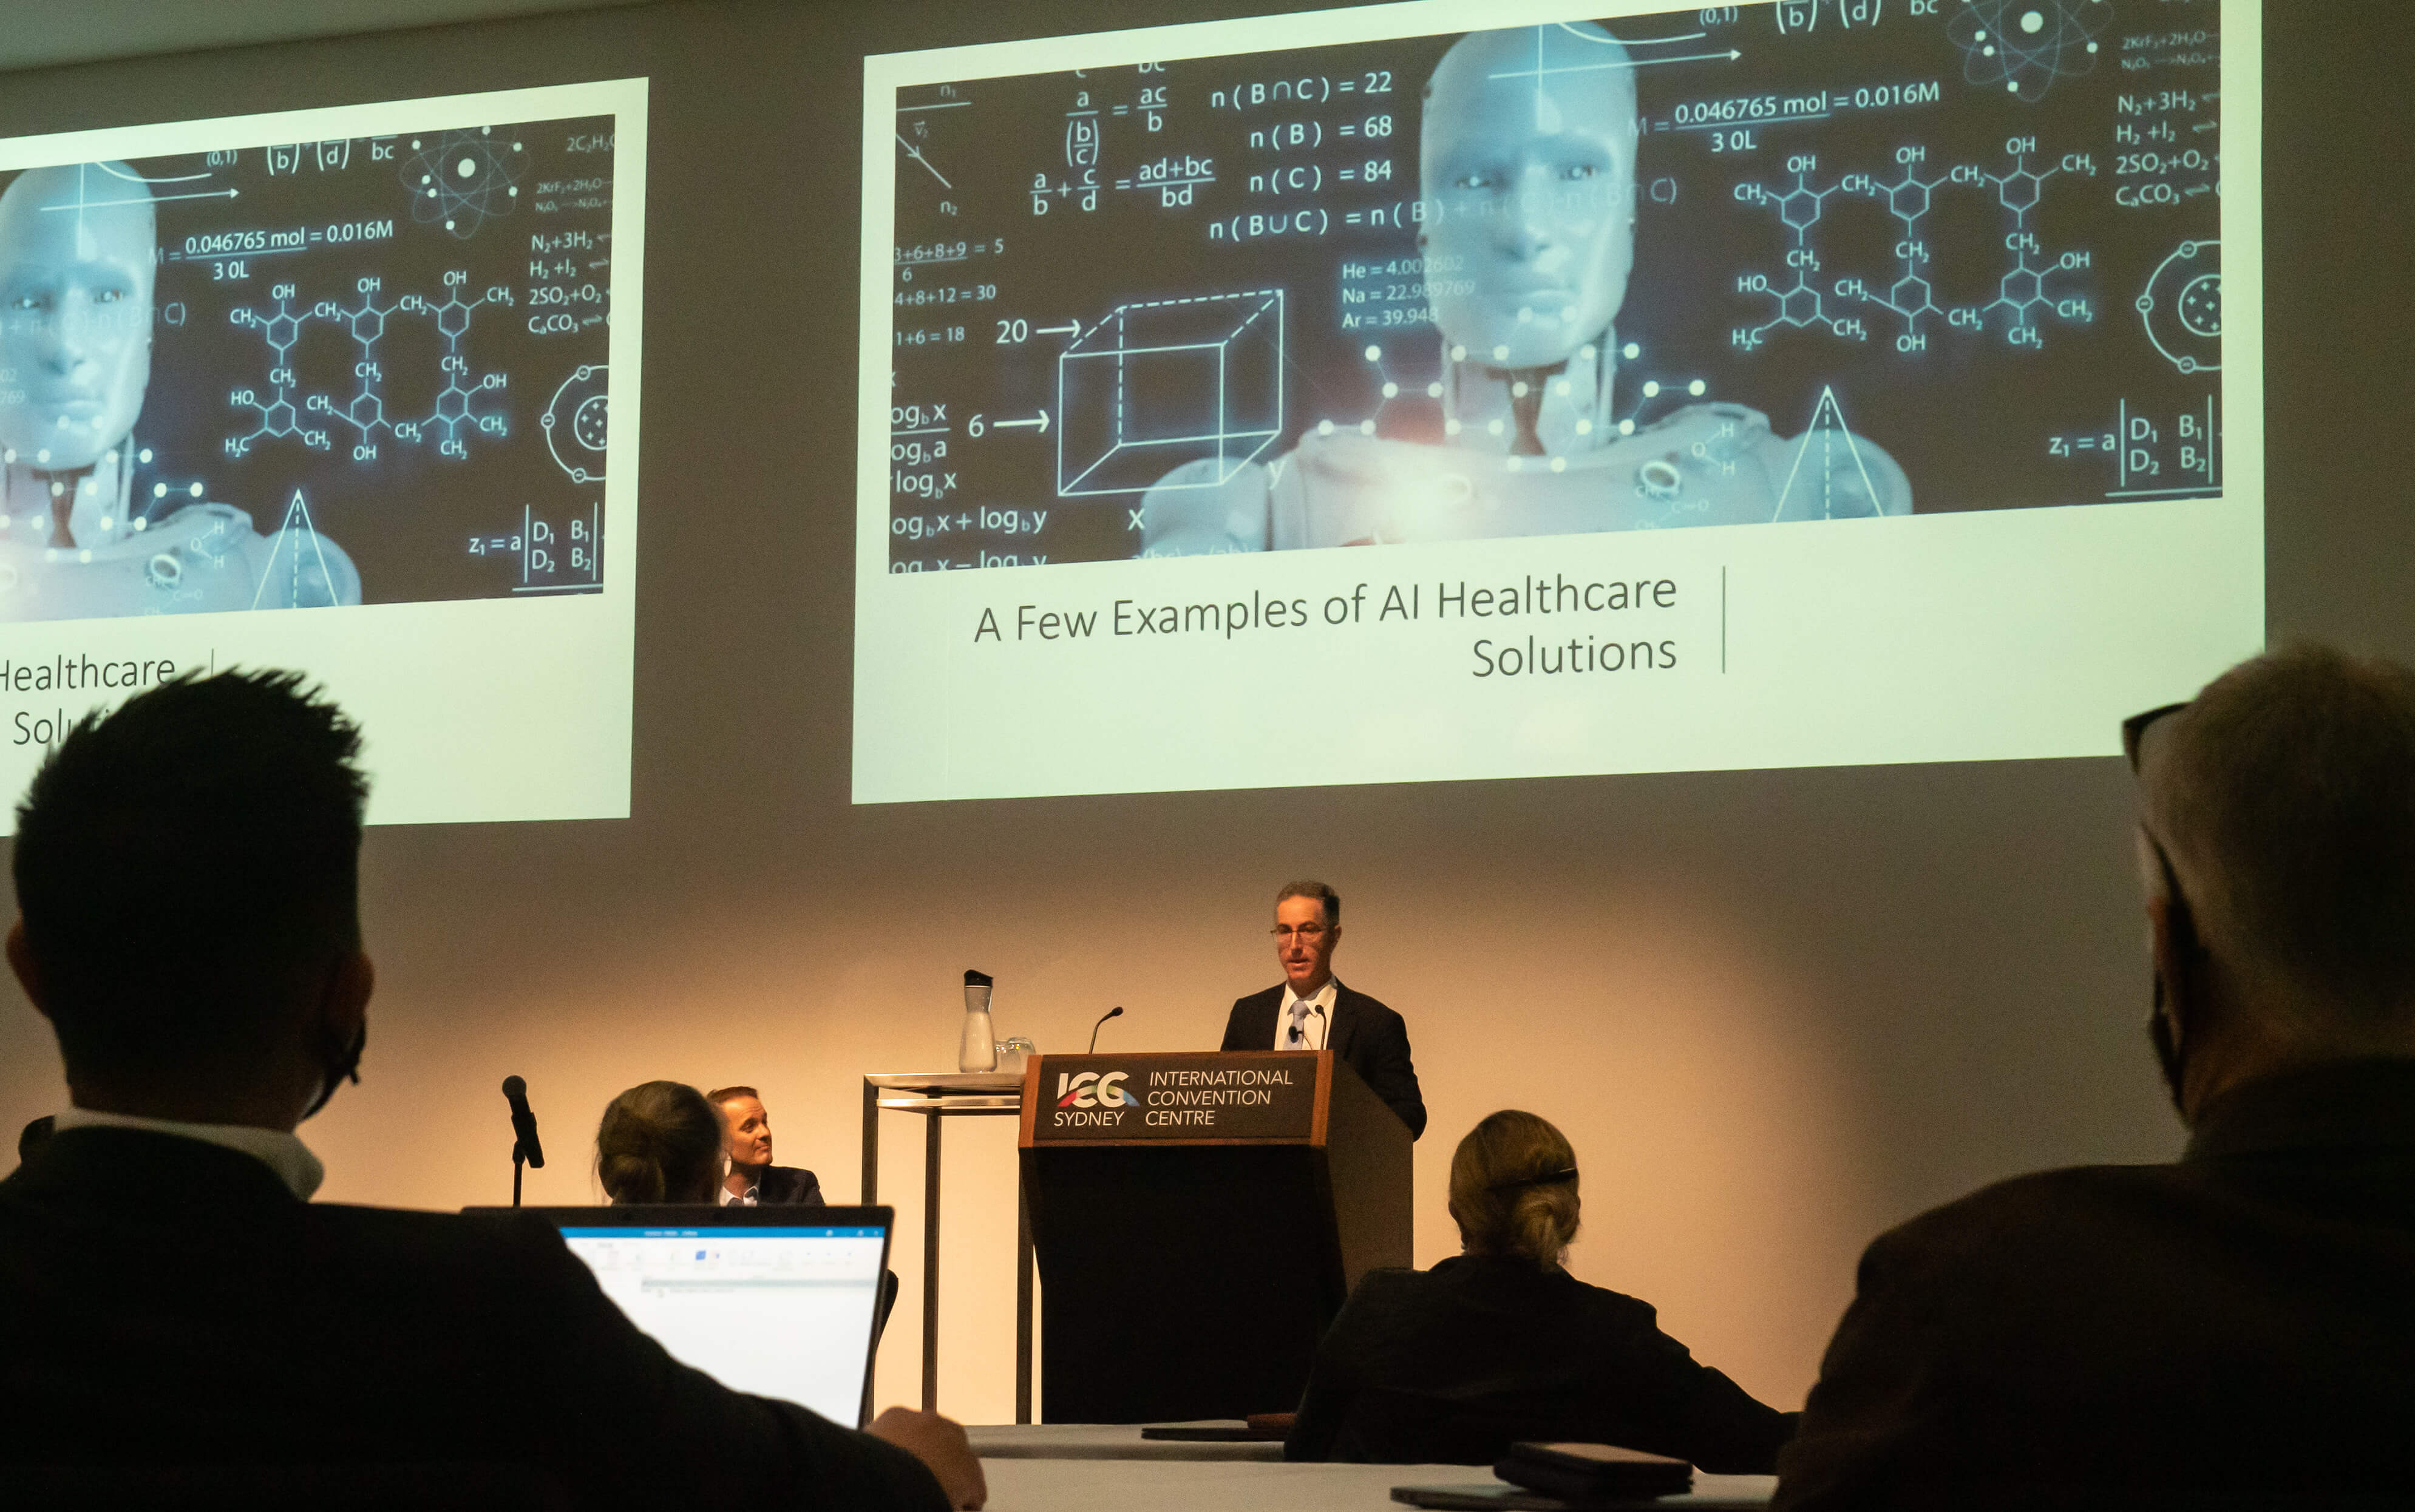 Artificial intelligence in Medicine: a presentation by Dr Granot